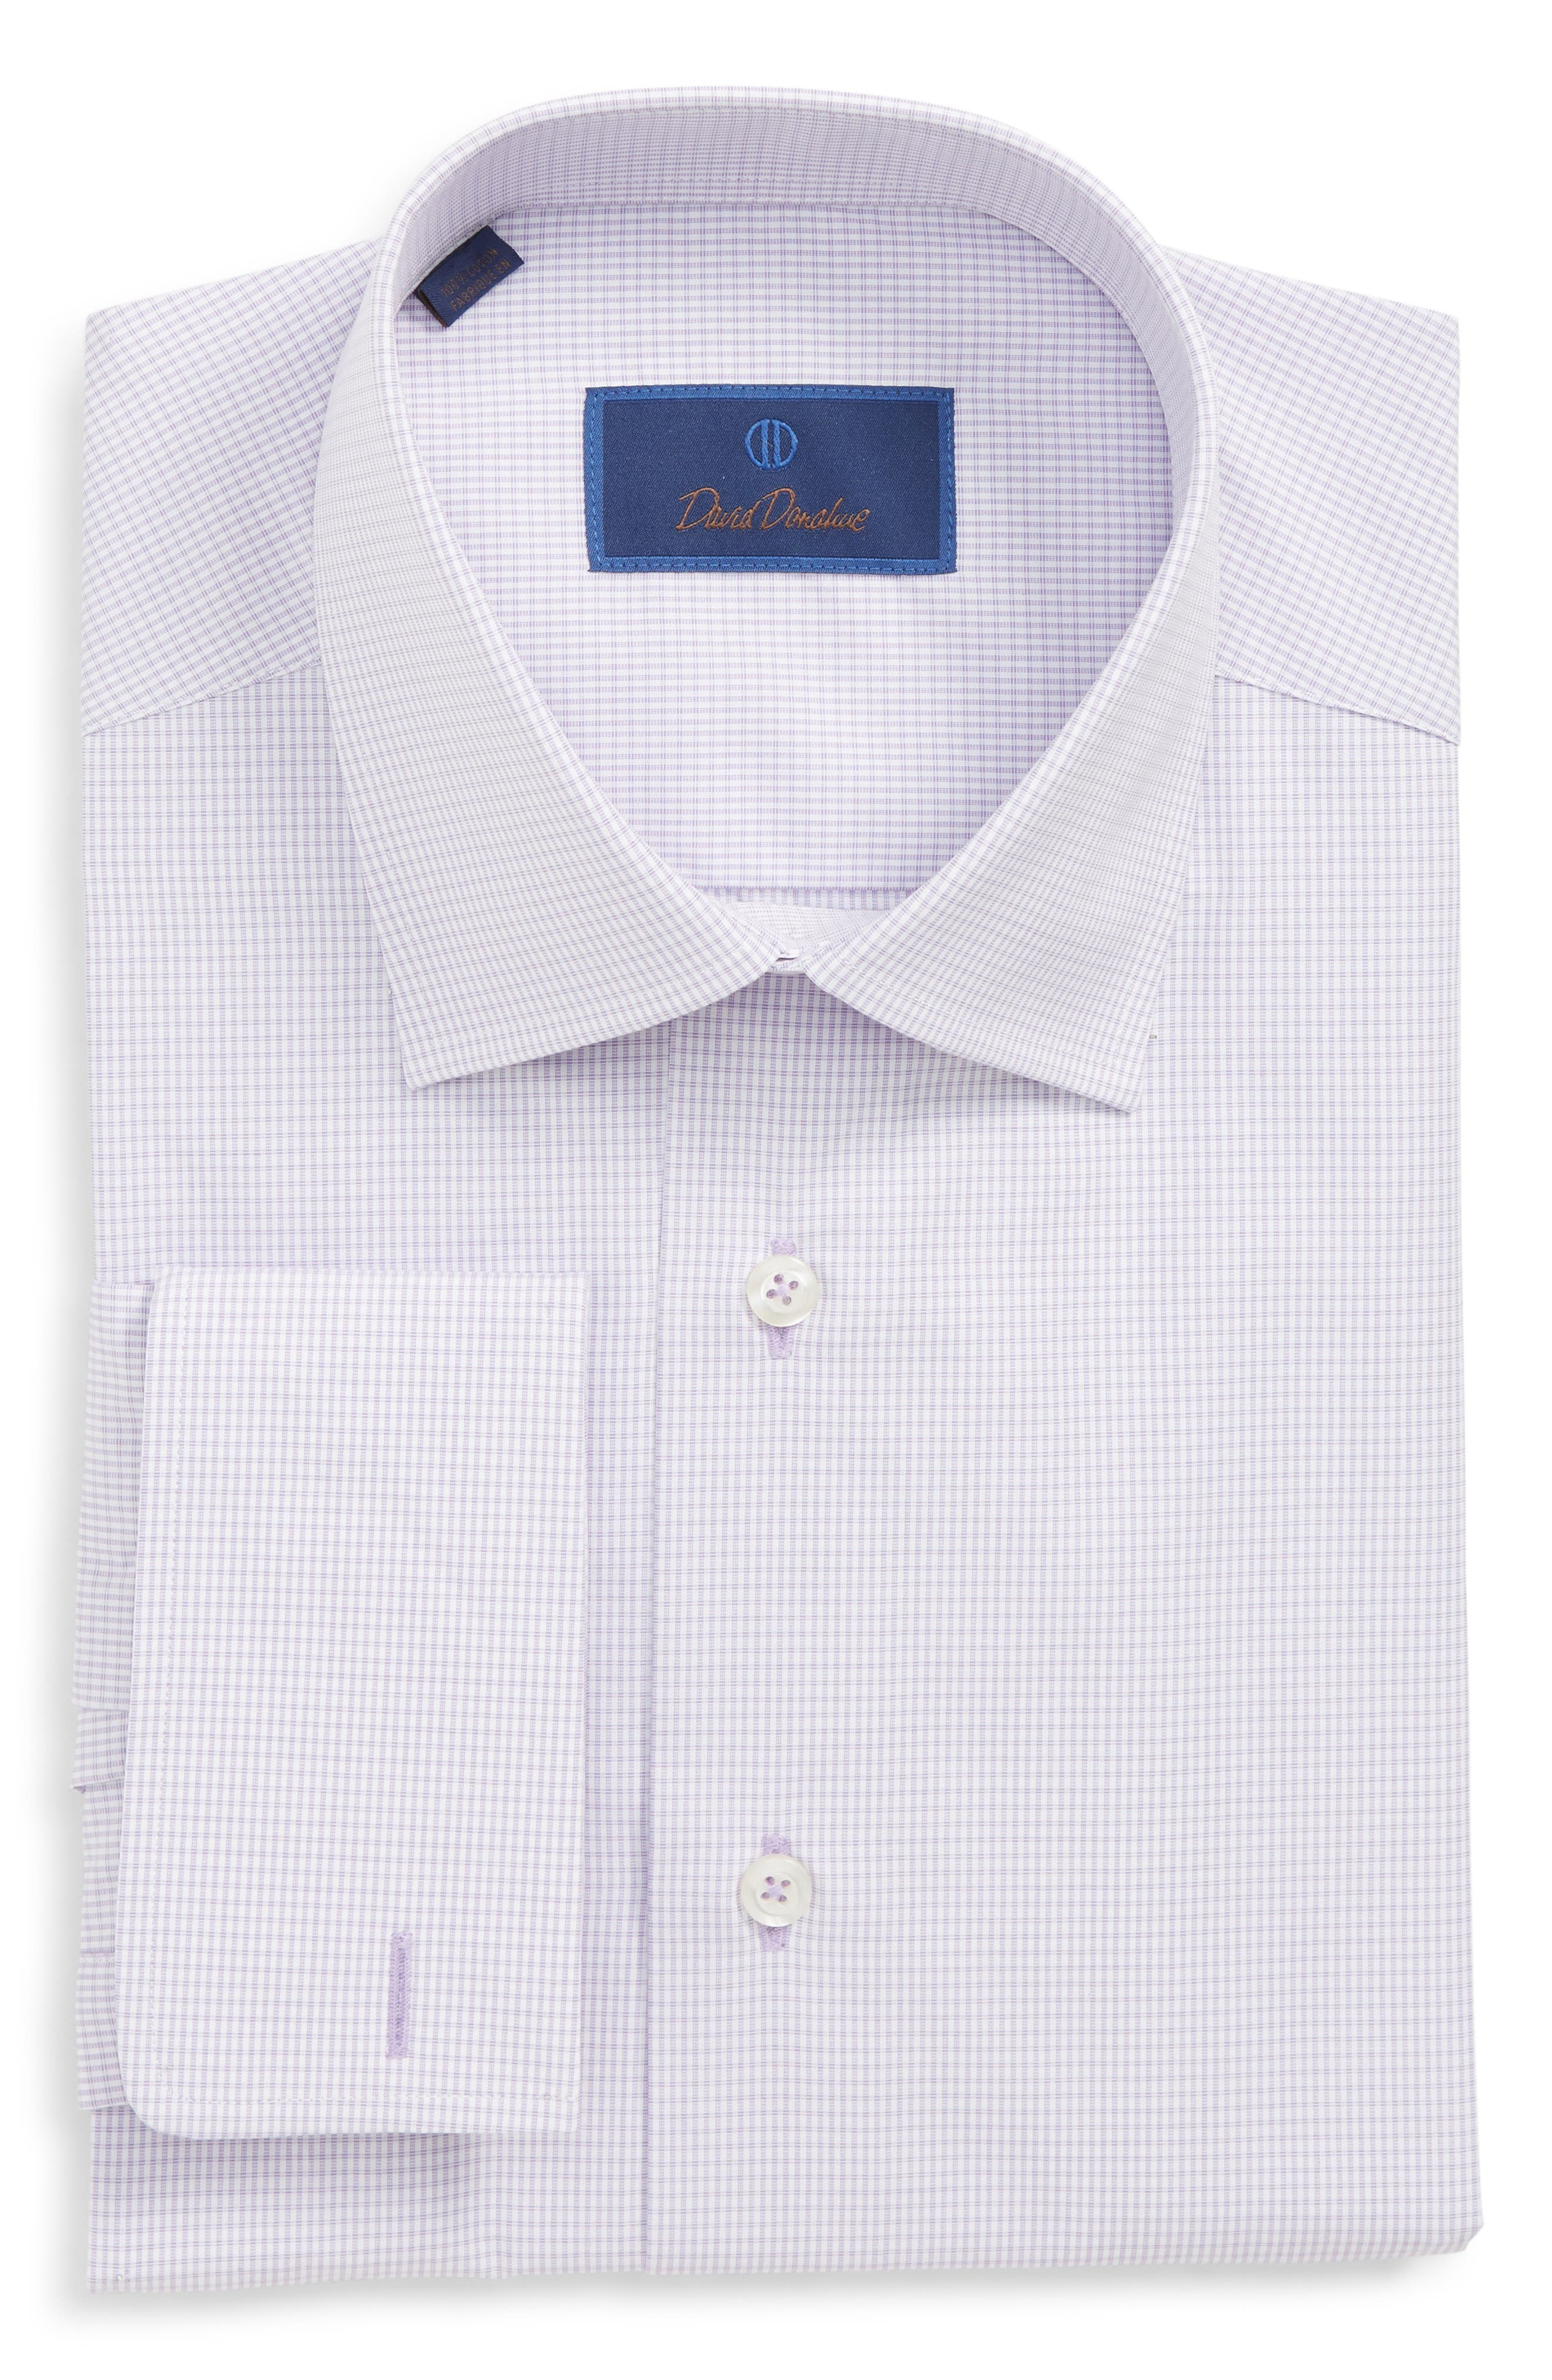 DAVID DONAHUE Men'S Regular-Fit Micro-Gingham Dress Shirt With French Cuffs in Lilac